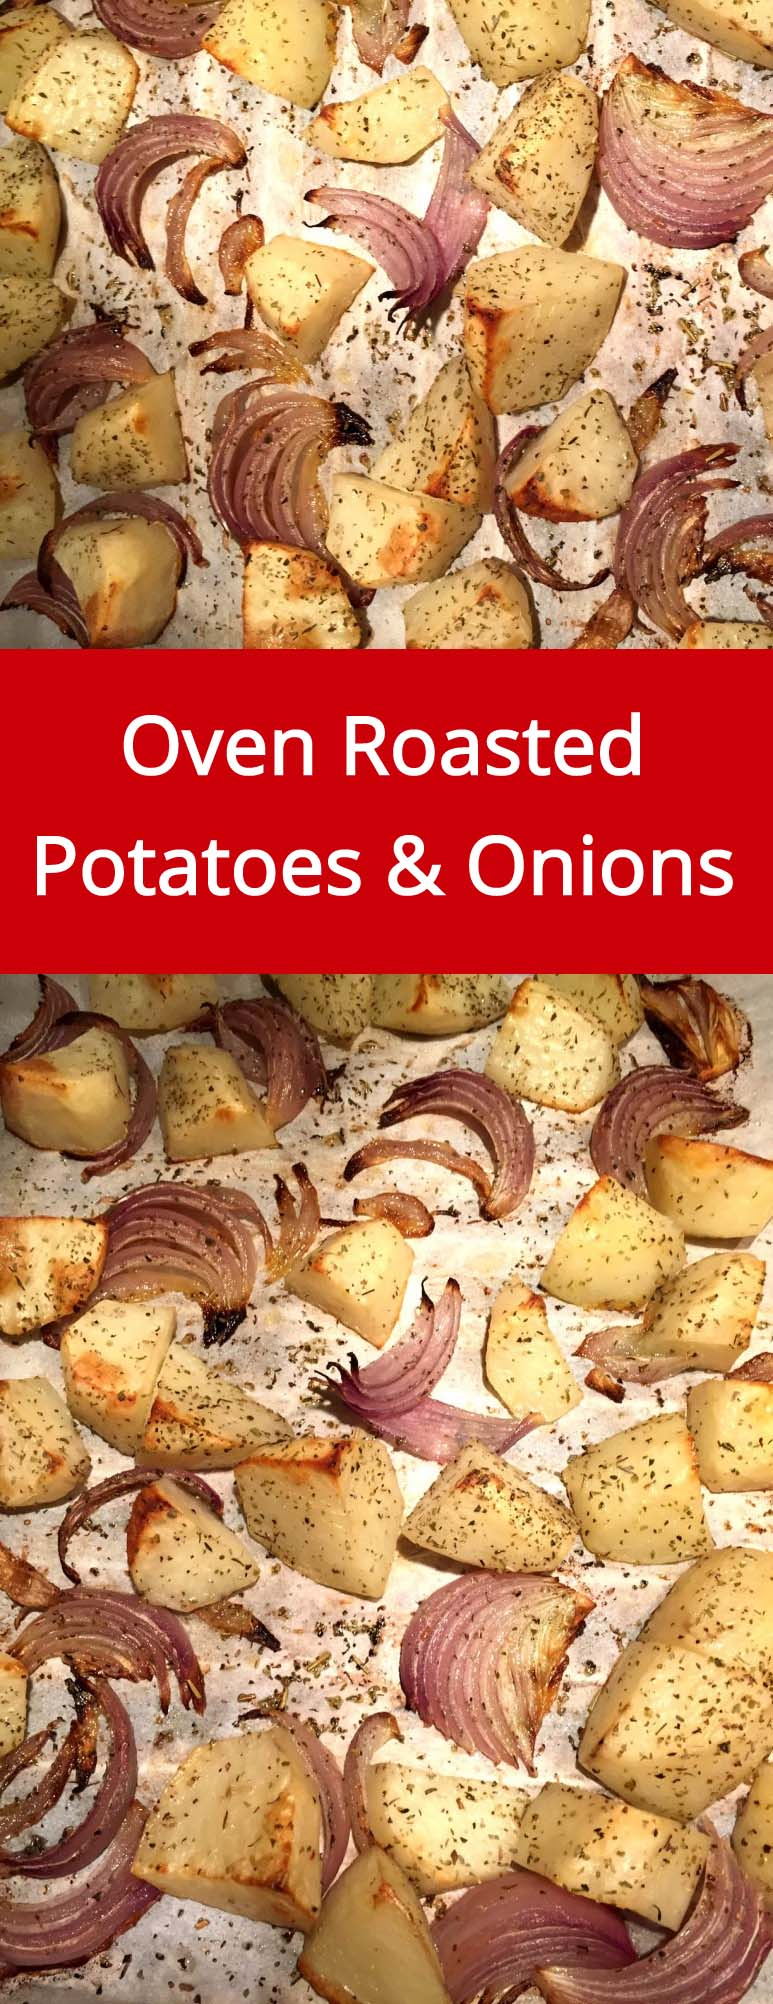 Oven Roasted Potatoes And Onions Recipe - super easy and yummy, the oven does all the work! | MelanieCooks.com